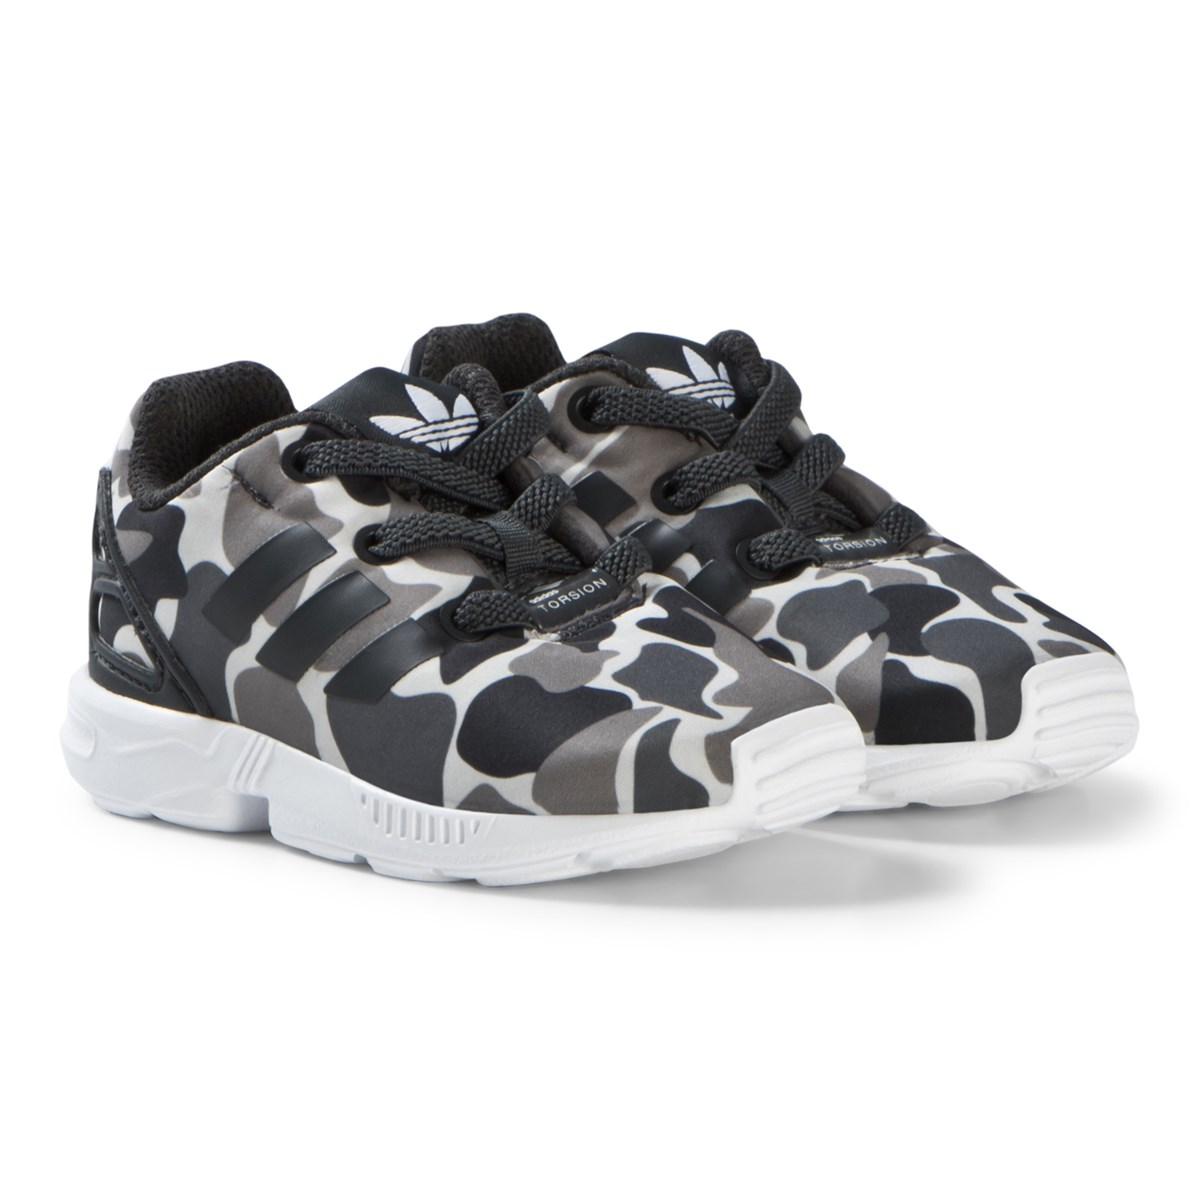 0c50a02678eb6 adidas Originals Grey Camo Print ZX Flux Trainers